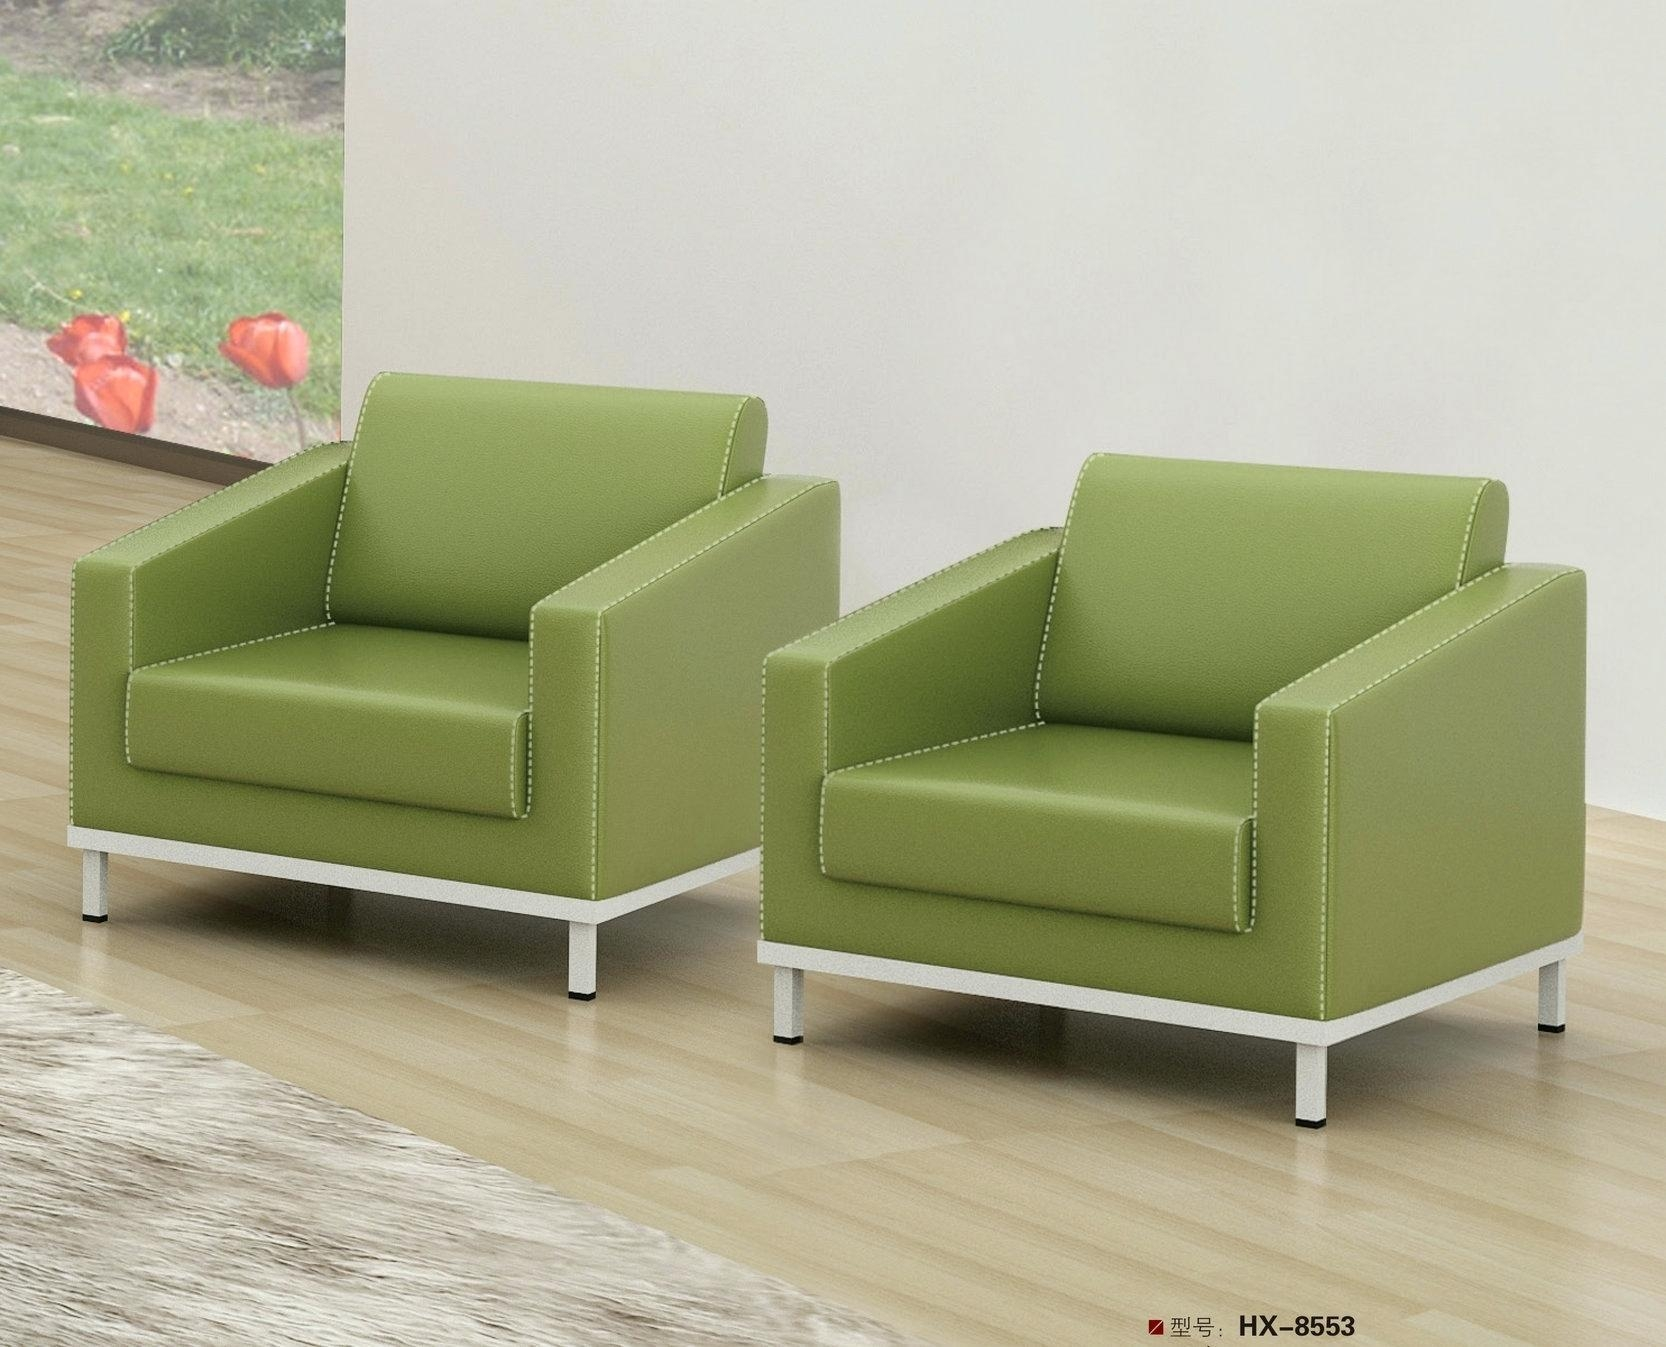 Red Leather Sofa Beds Office Combination Sofashunde Kika Furniture With Old Fashioned Sofas (View 13 of 20)